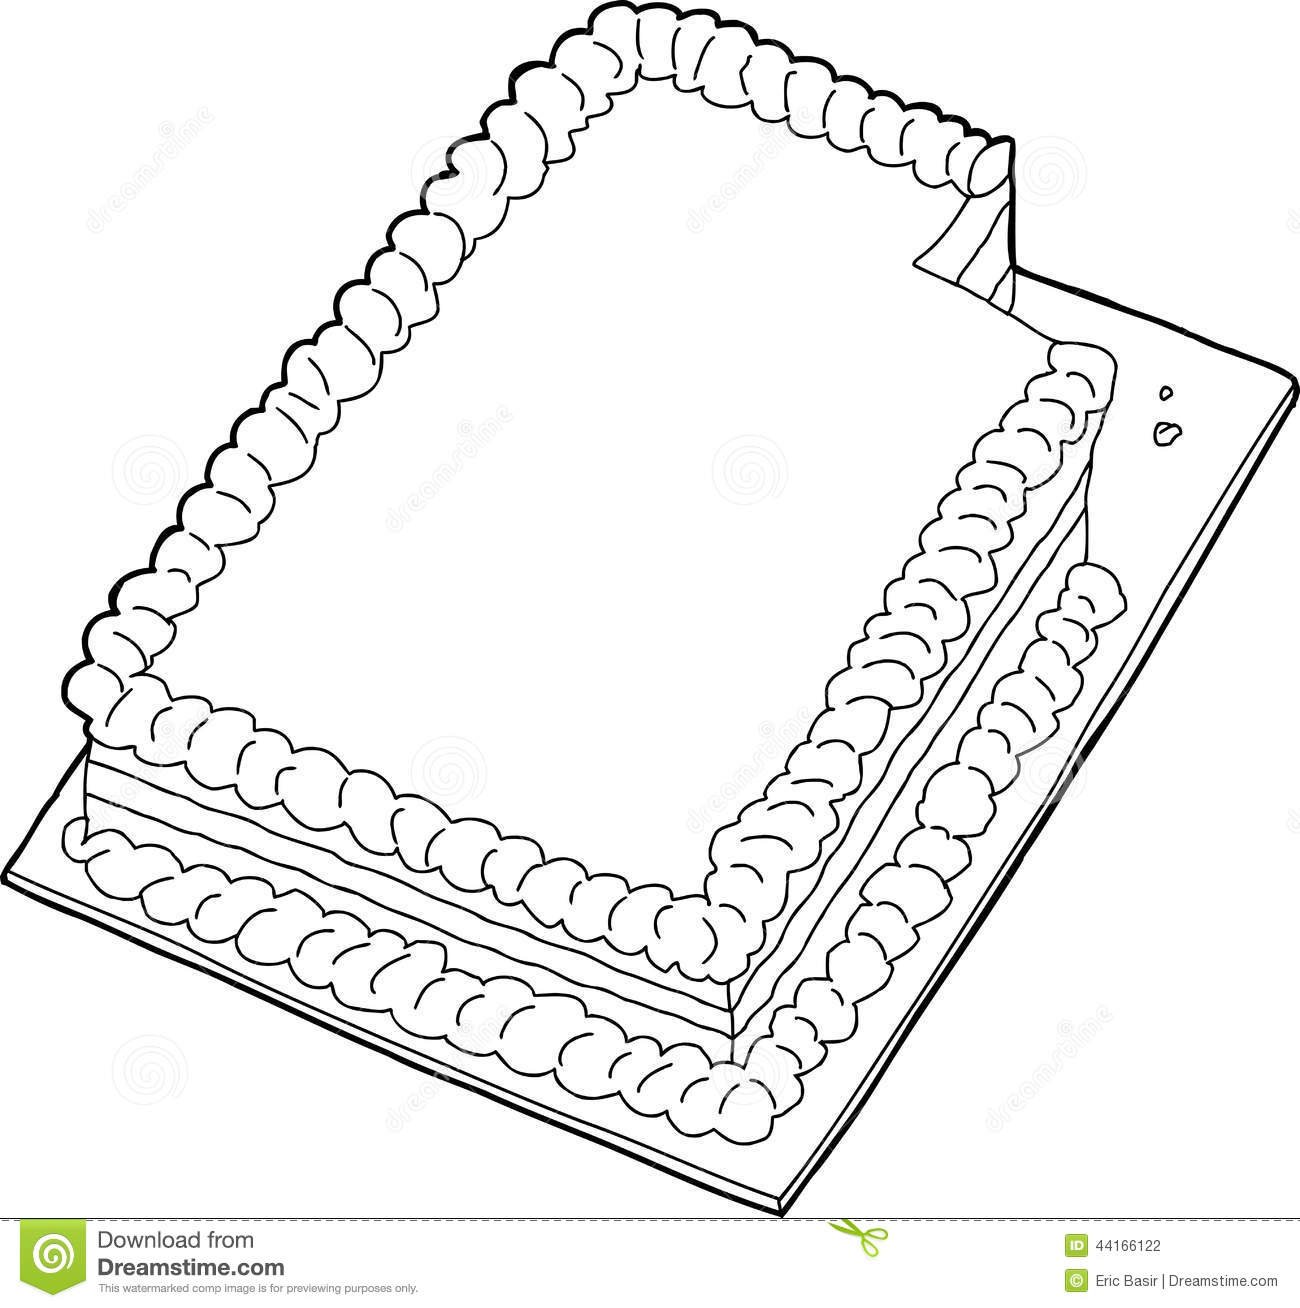 Sheet cake clipart black and white Sheet Cake Clipart - Clipart Kid black and white